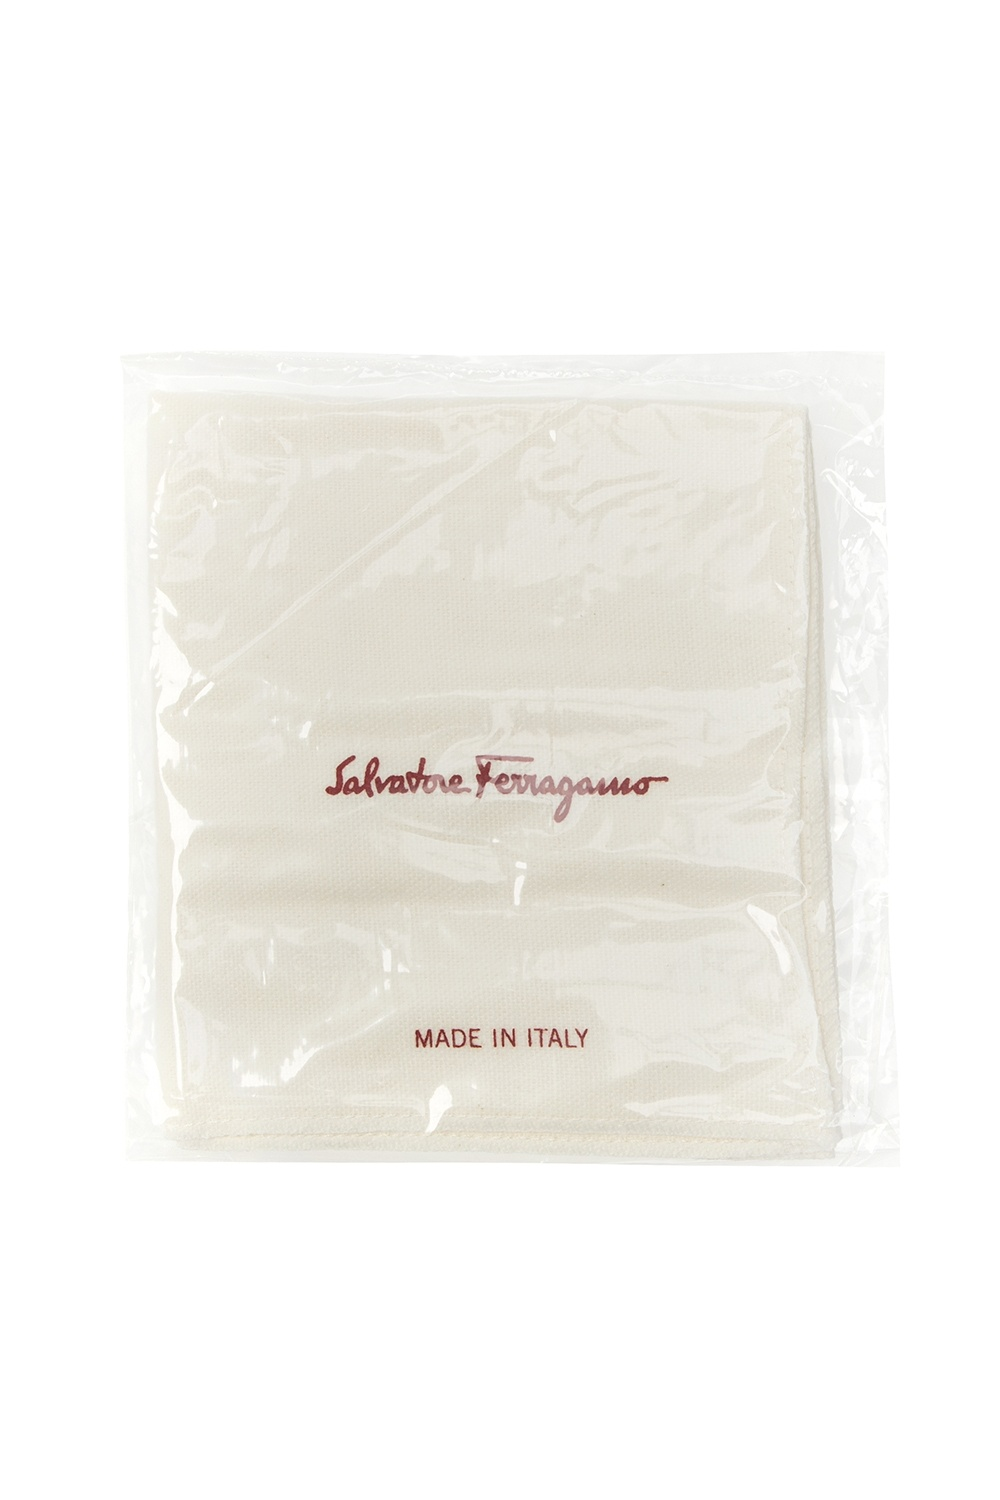 Salvatore Ferragamo Shoe care kit